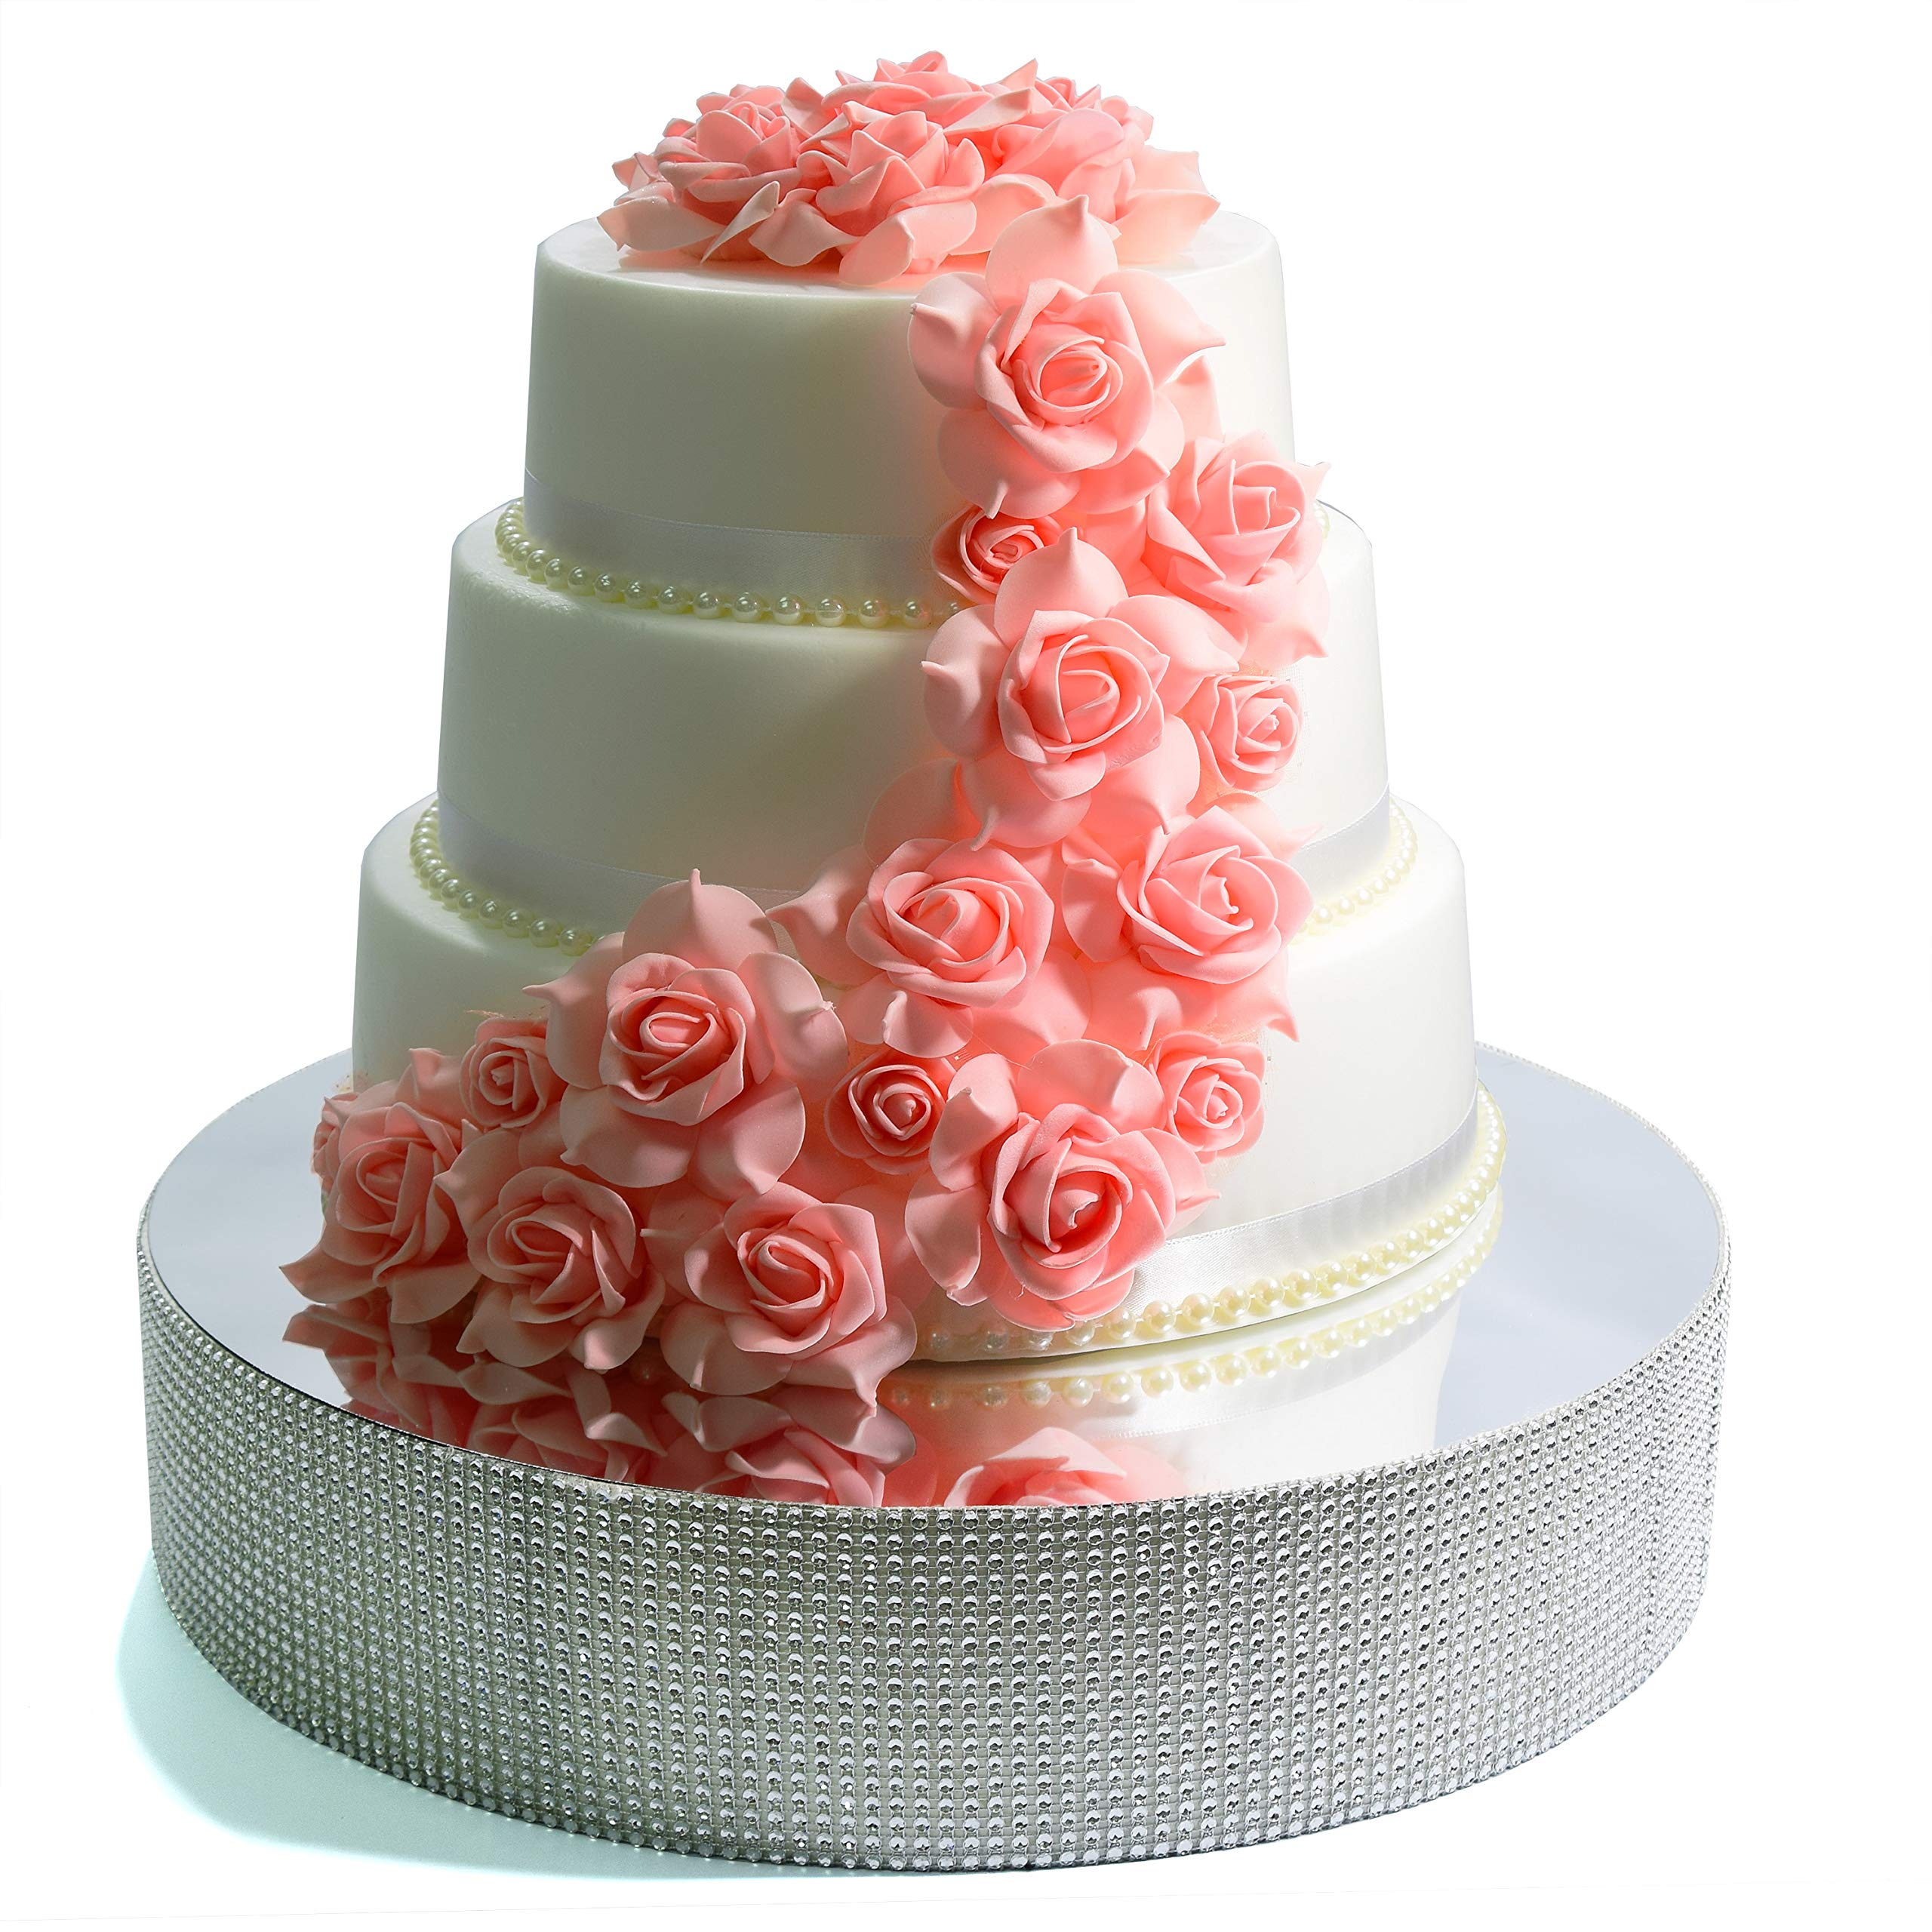 Cakebon Wedding Cake Stand - Gorgeous Cake Display Centrepiece for Wedding Cakes, Cupcakes and Desserts (Silver - 18 inches - Round)